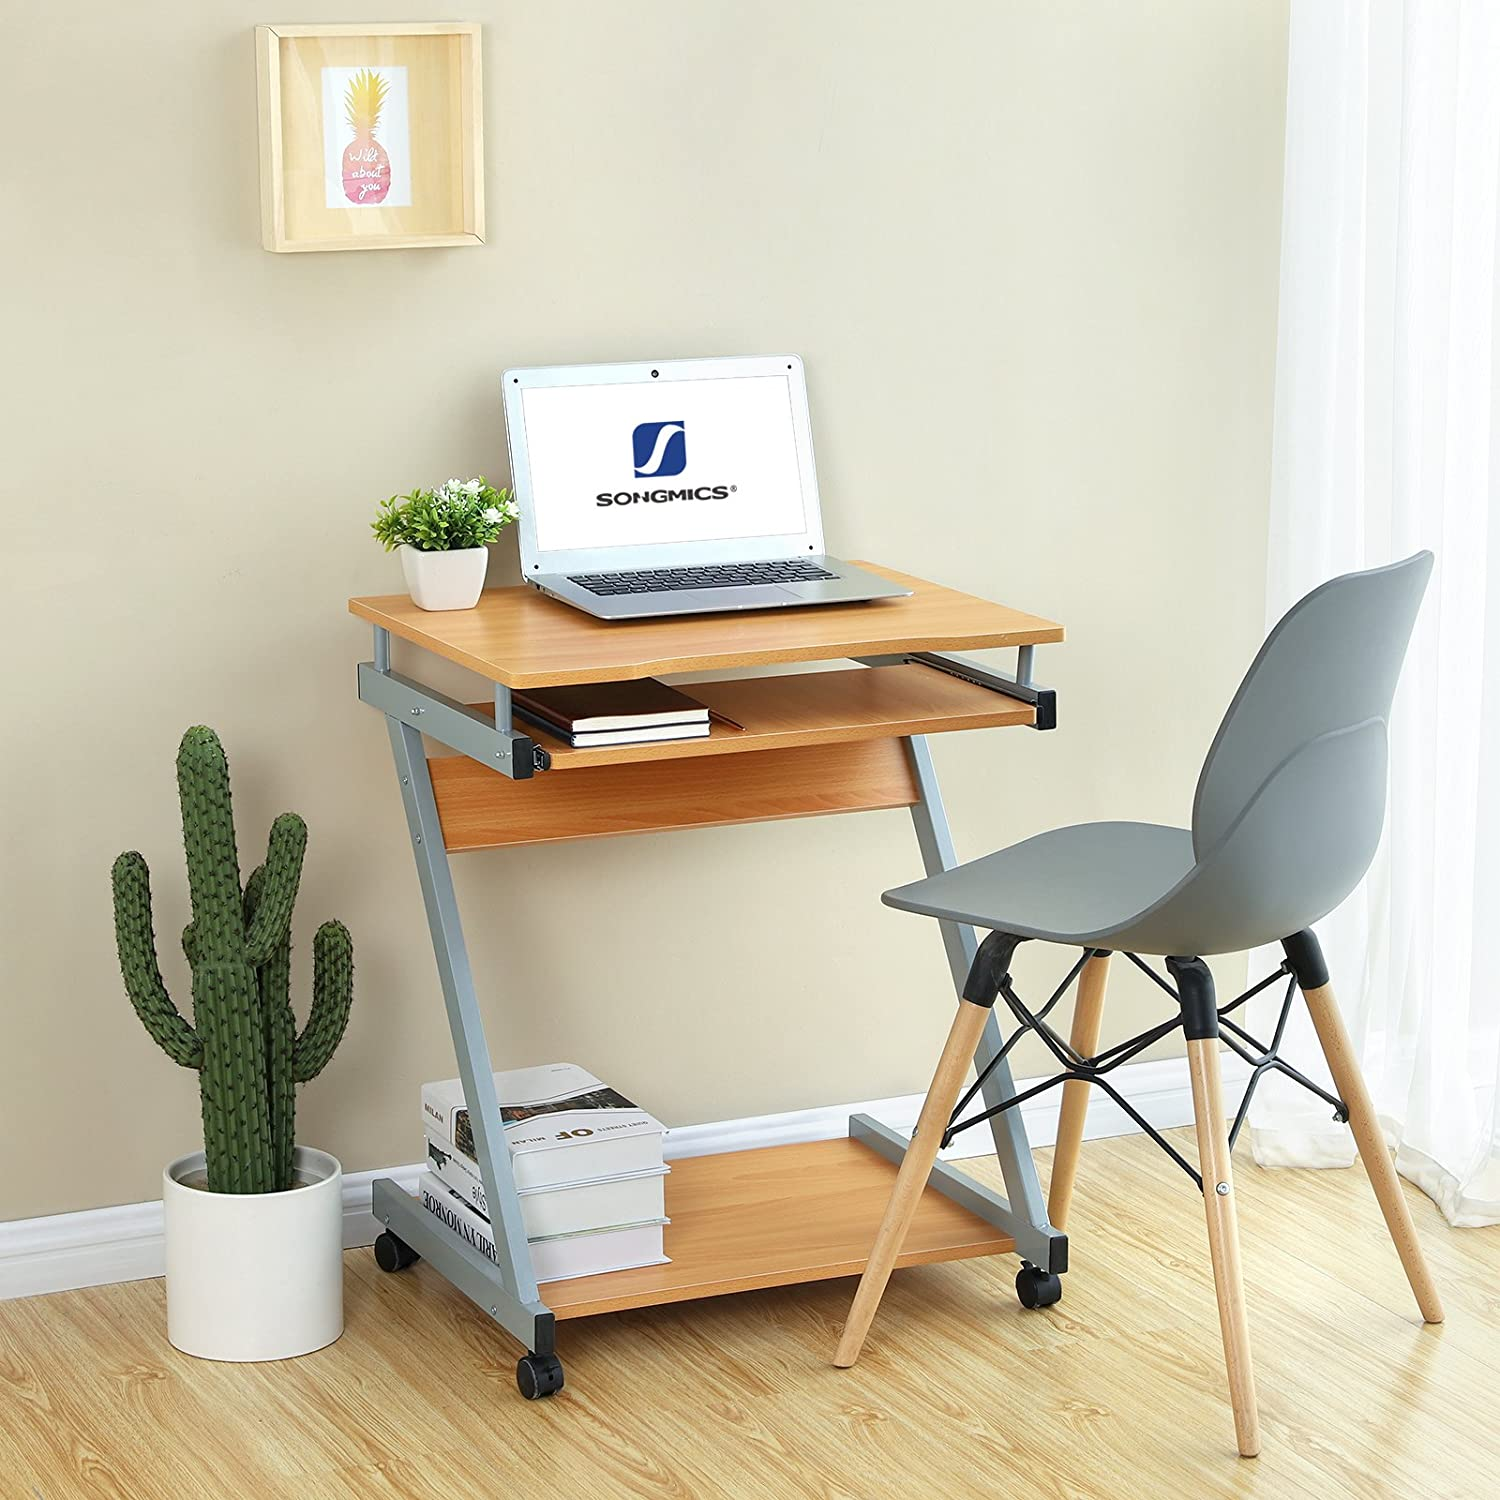 Songmics Computer Desk Mobile Writing Desk Z Shaped Pc Table Study